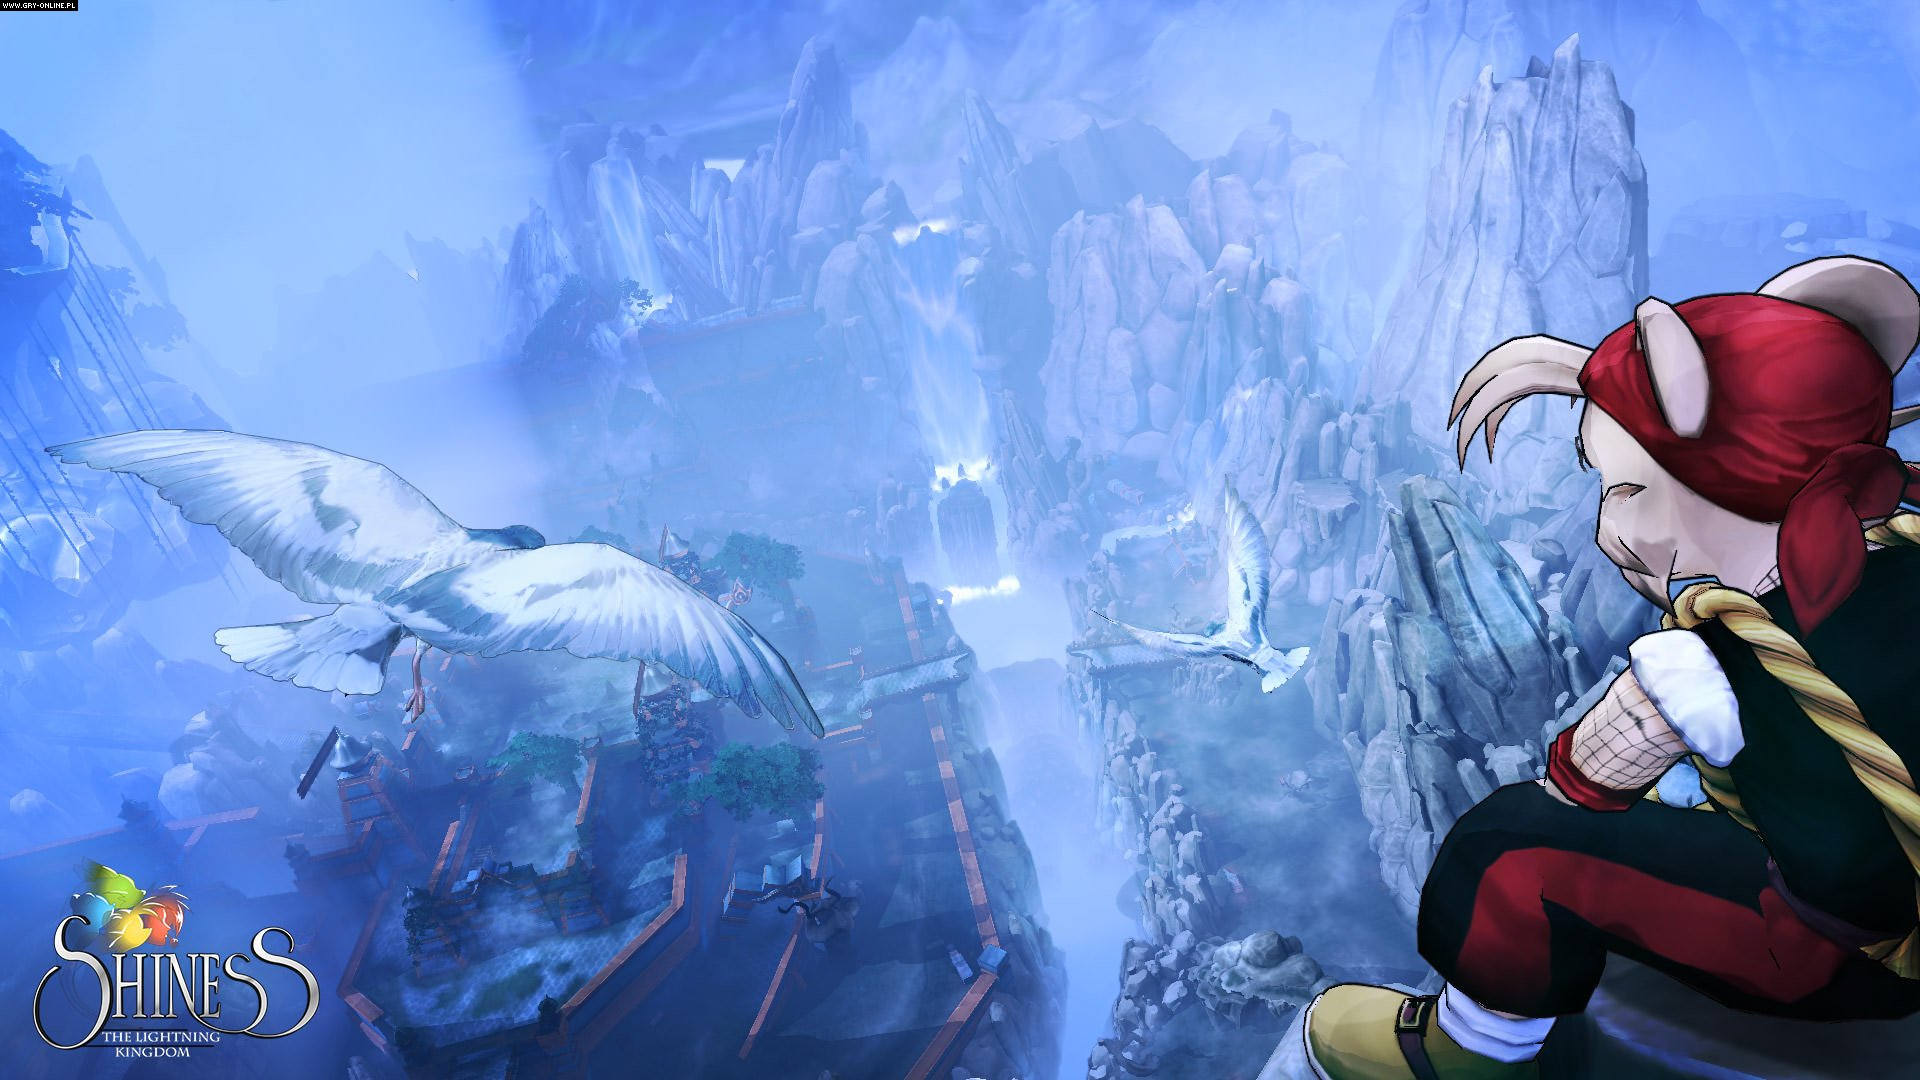 Shiness: The Lightning Kingdom XONE, PS4, PC, WiiU Games Image 2/12, Enigami, Focus Home Interactive